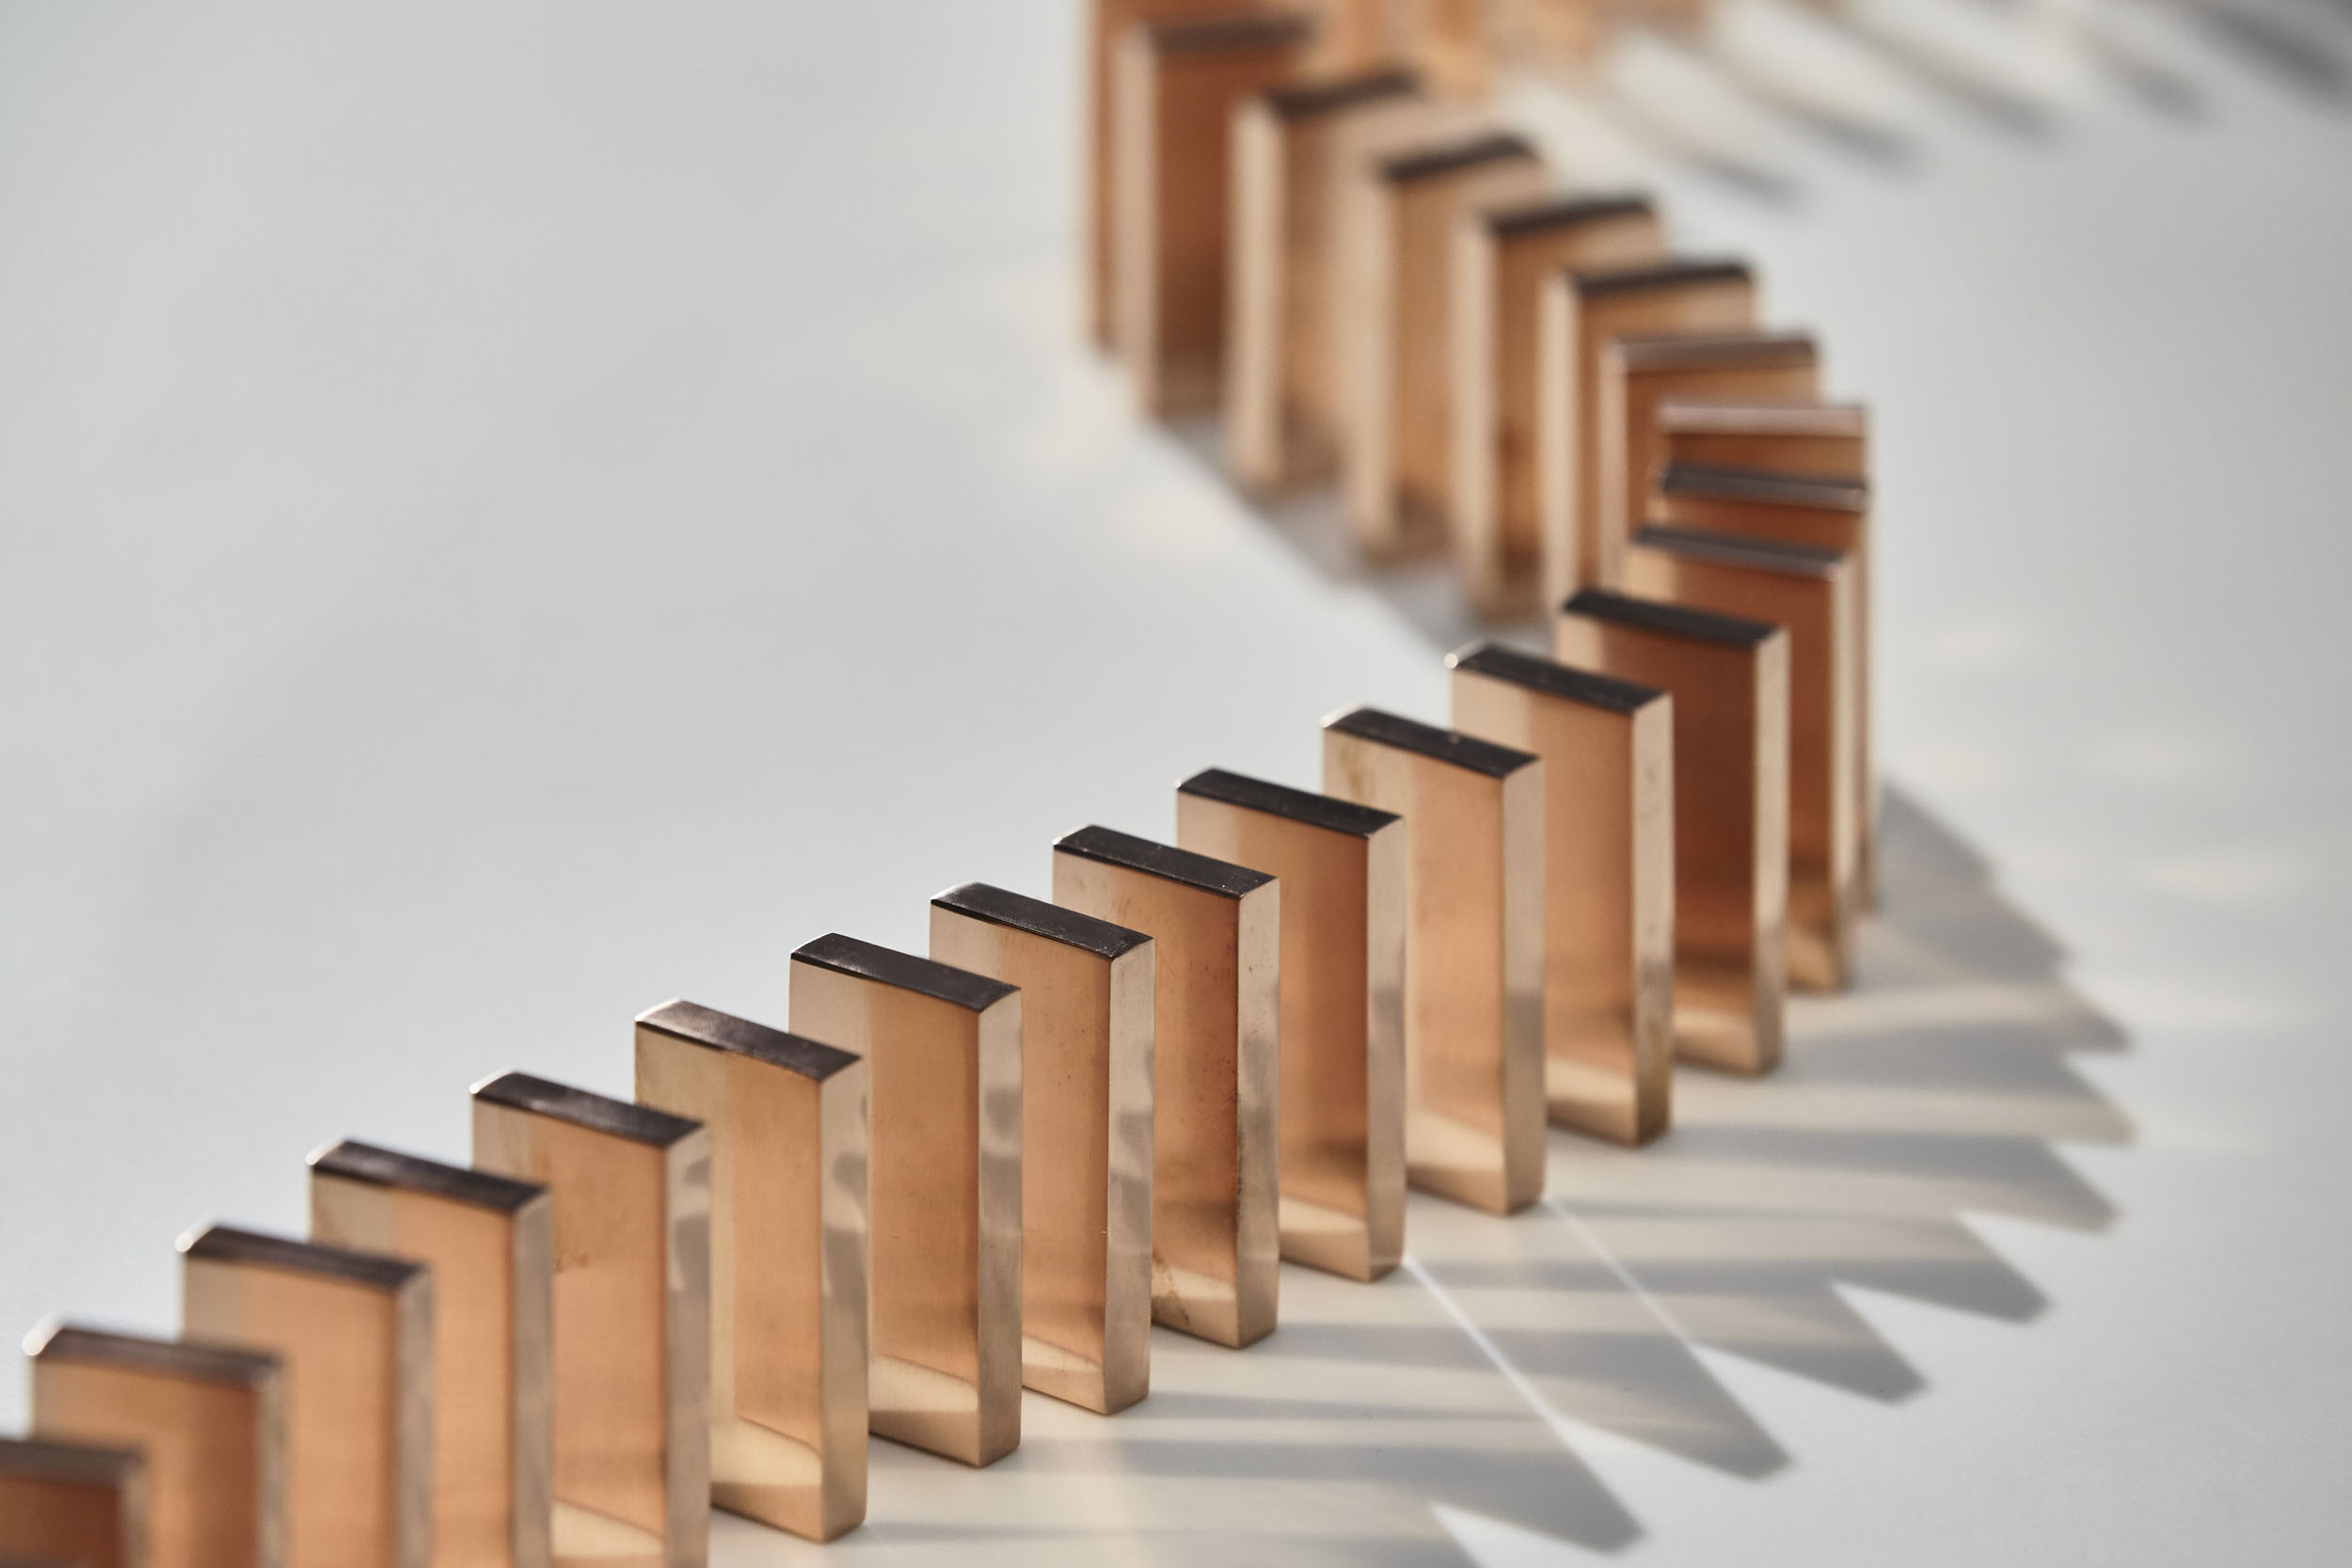 Detail copper dominos lined up